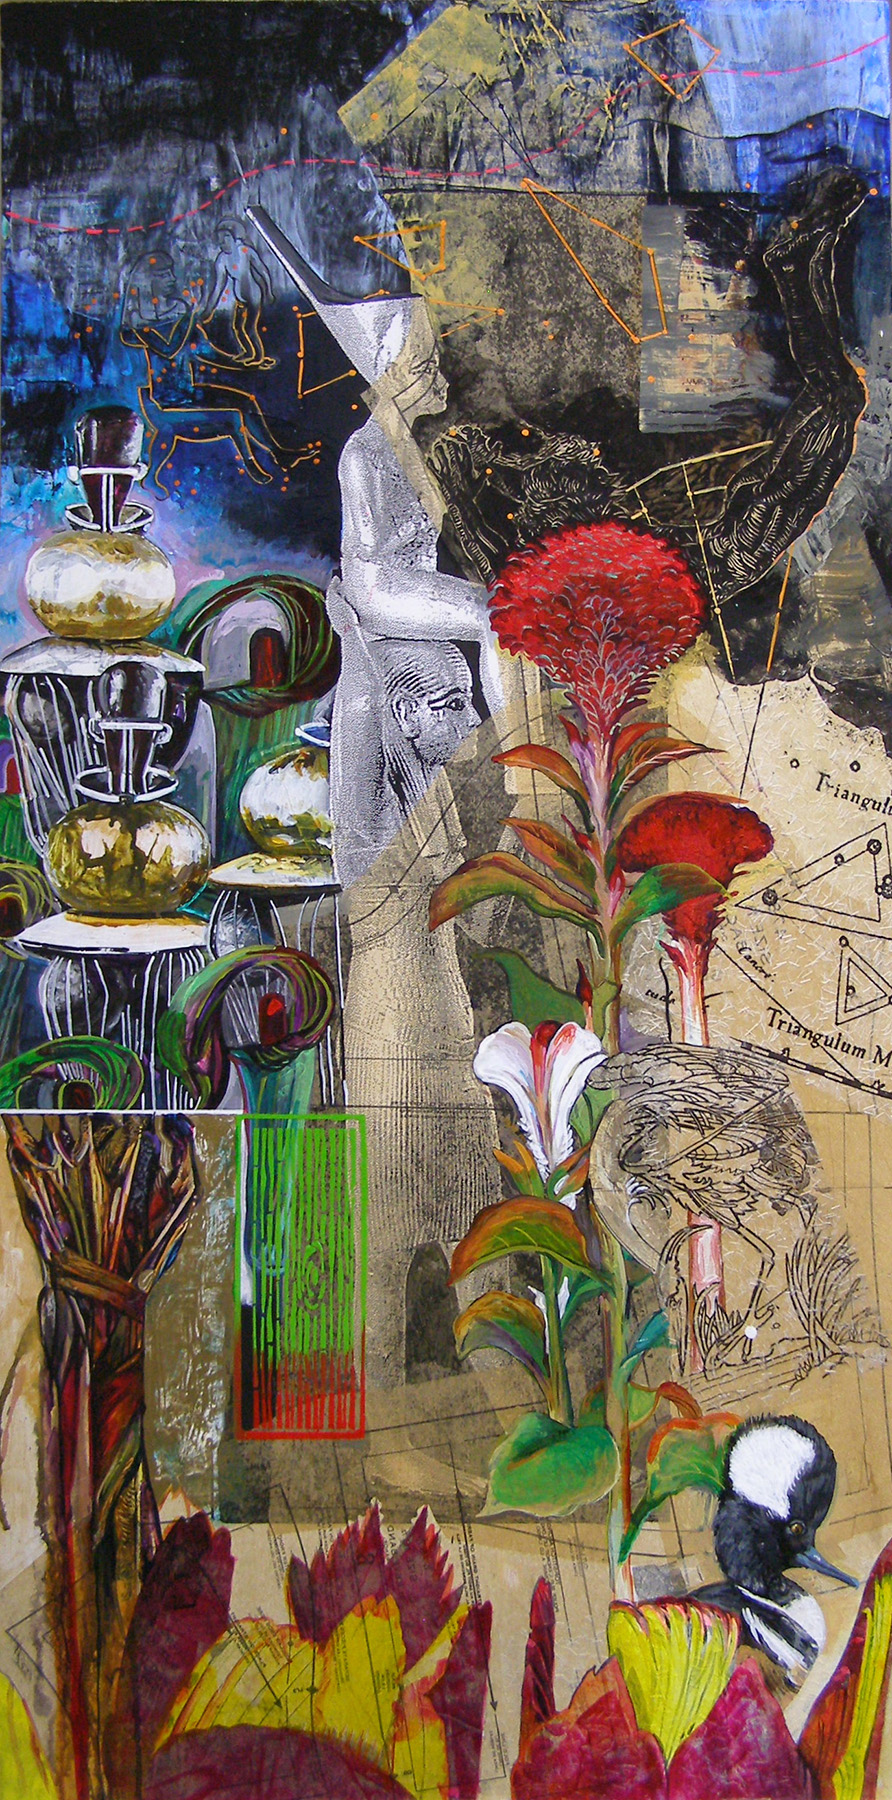 "Night Garden: Royal Boy and His Geometry, 24x48"", Mixed Media. Sold"